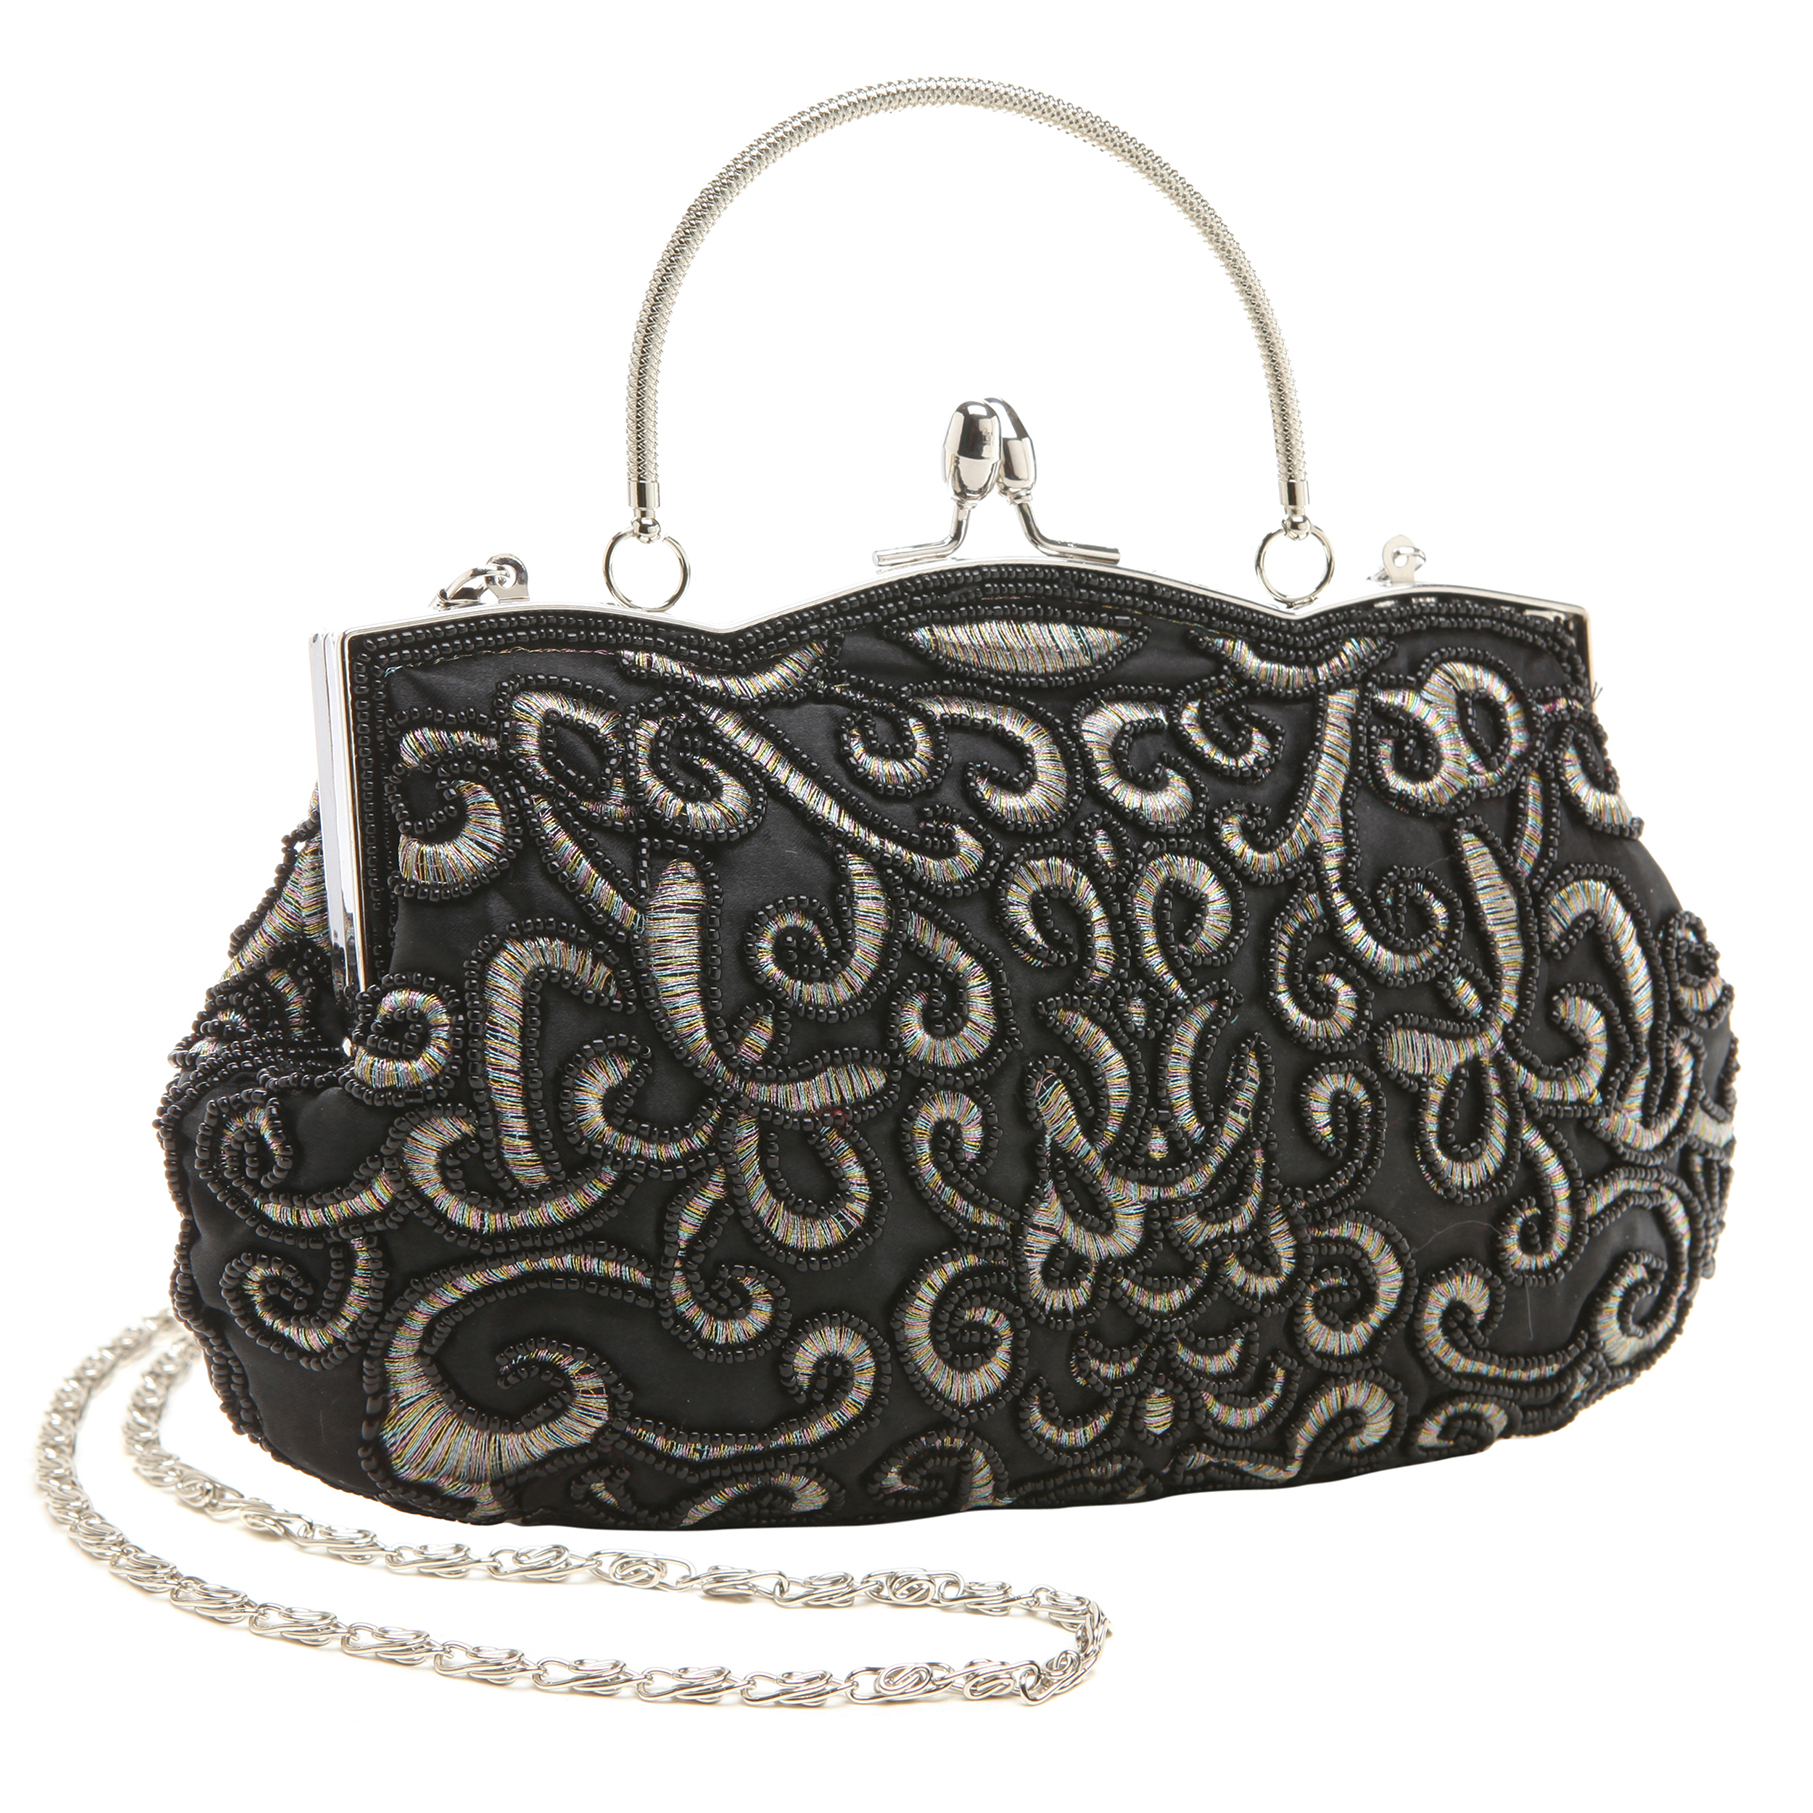 ADELE Black Embroidered Evening Handbag main